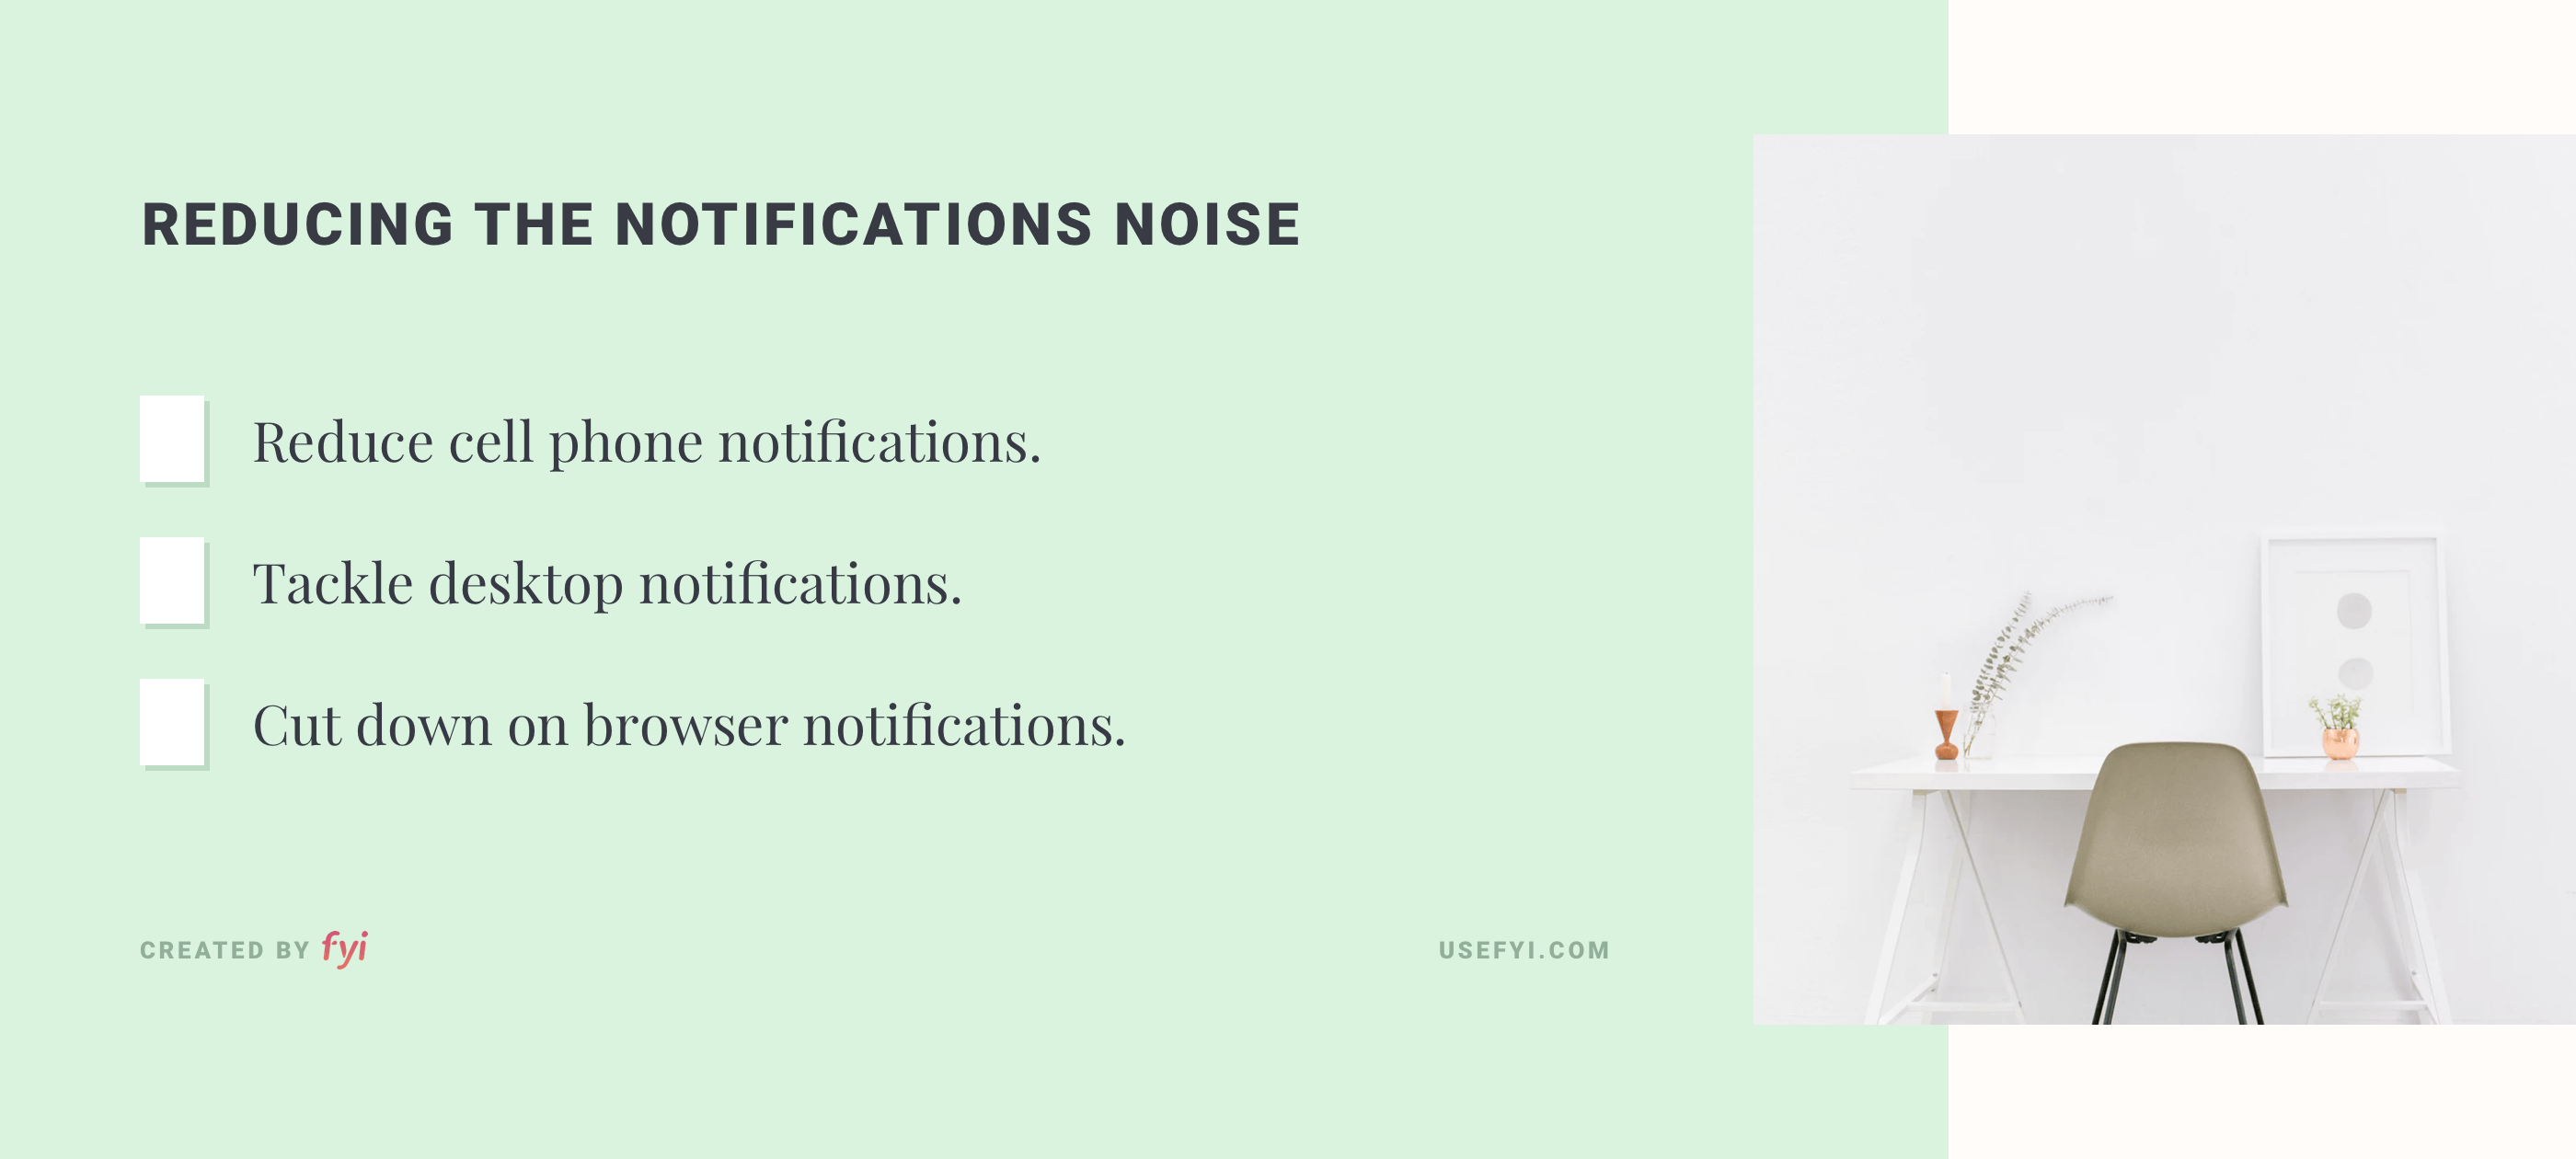 Reducing the notifications noise